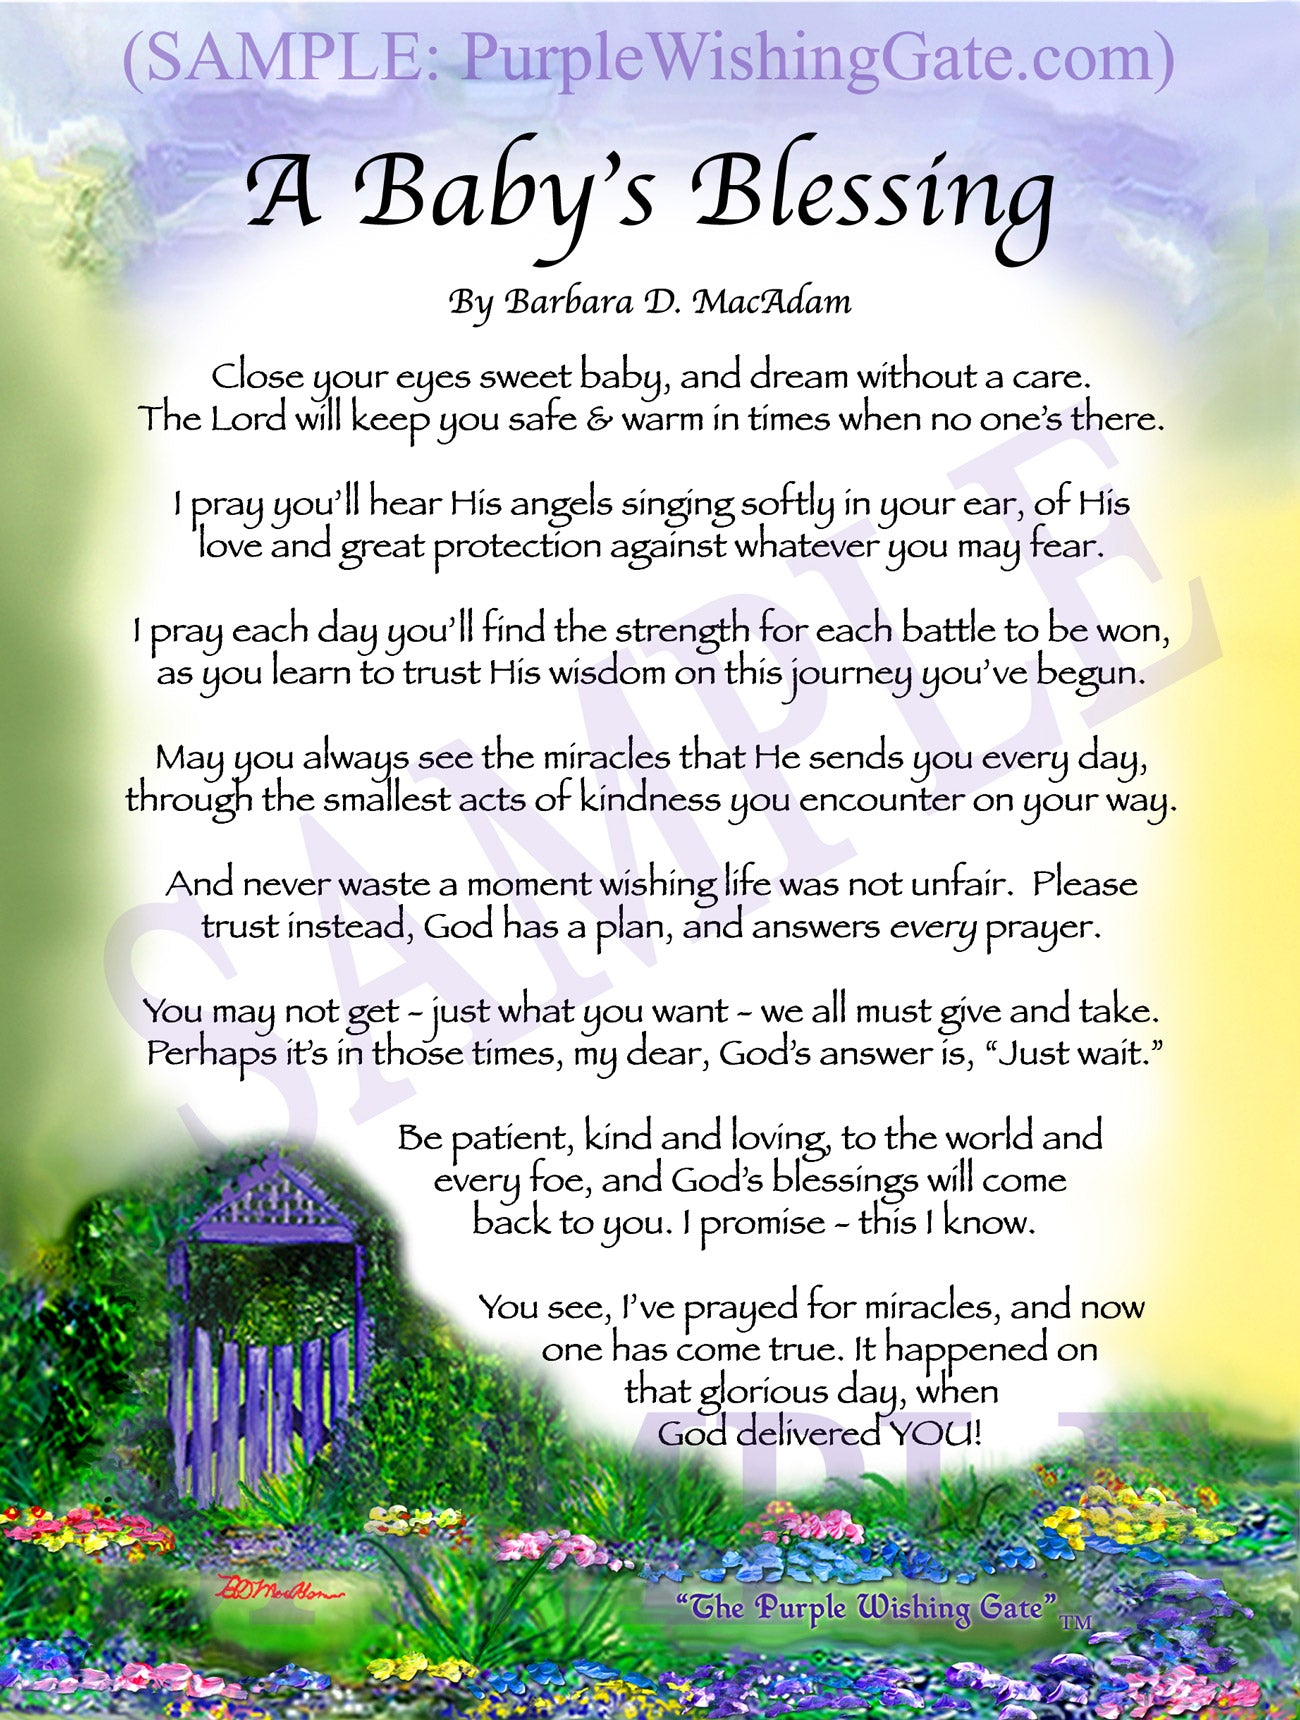 A Baby's Blessing - Baby Gift - PurpleWishingGate.com